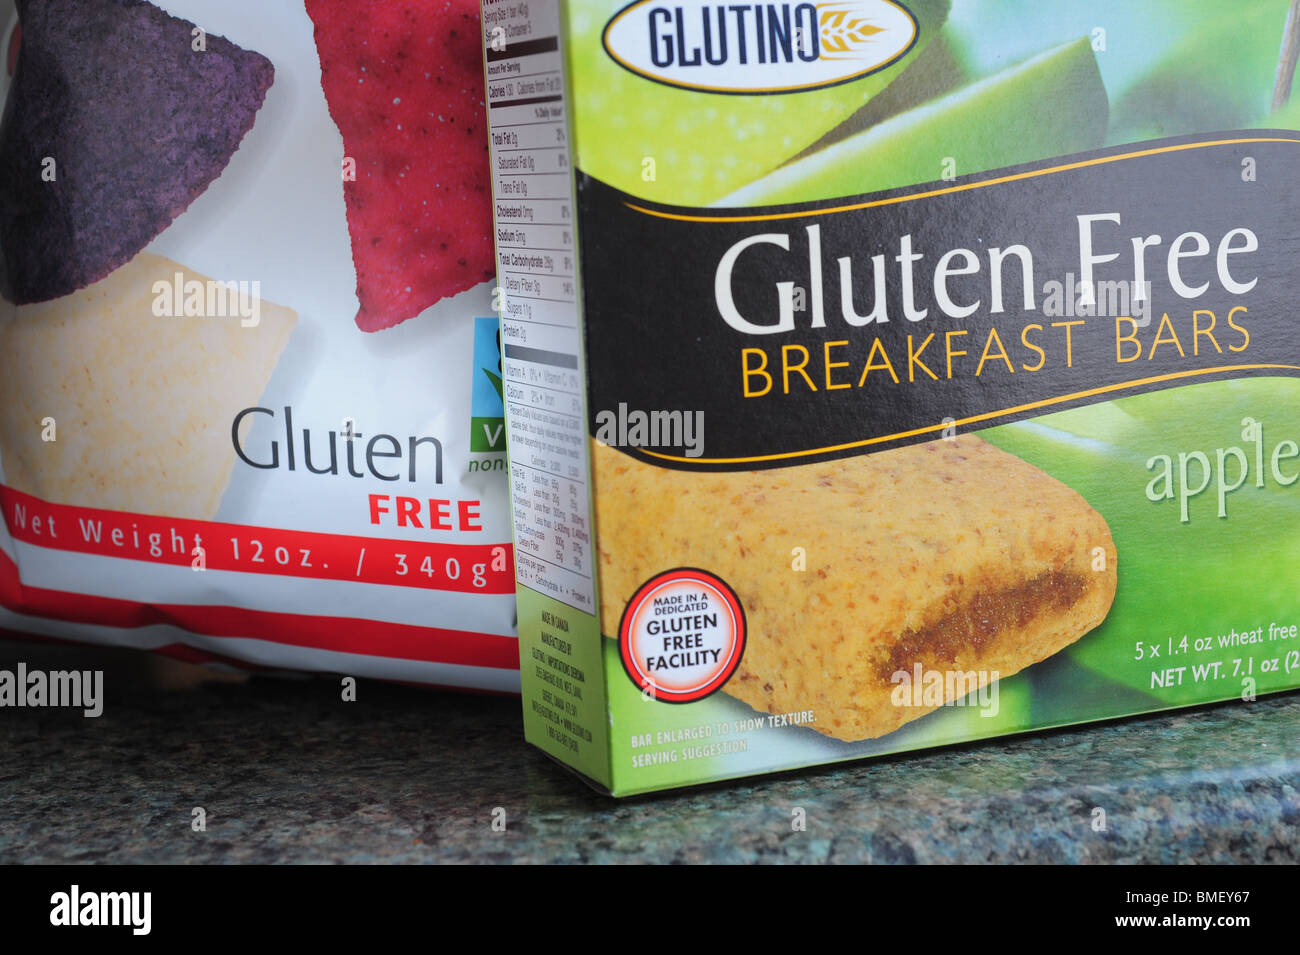 Gluten free food products Tortilla chips an breakfast bars - Stock Image